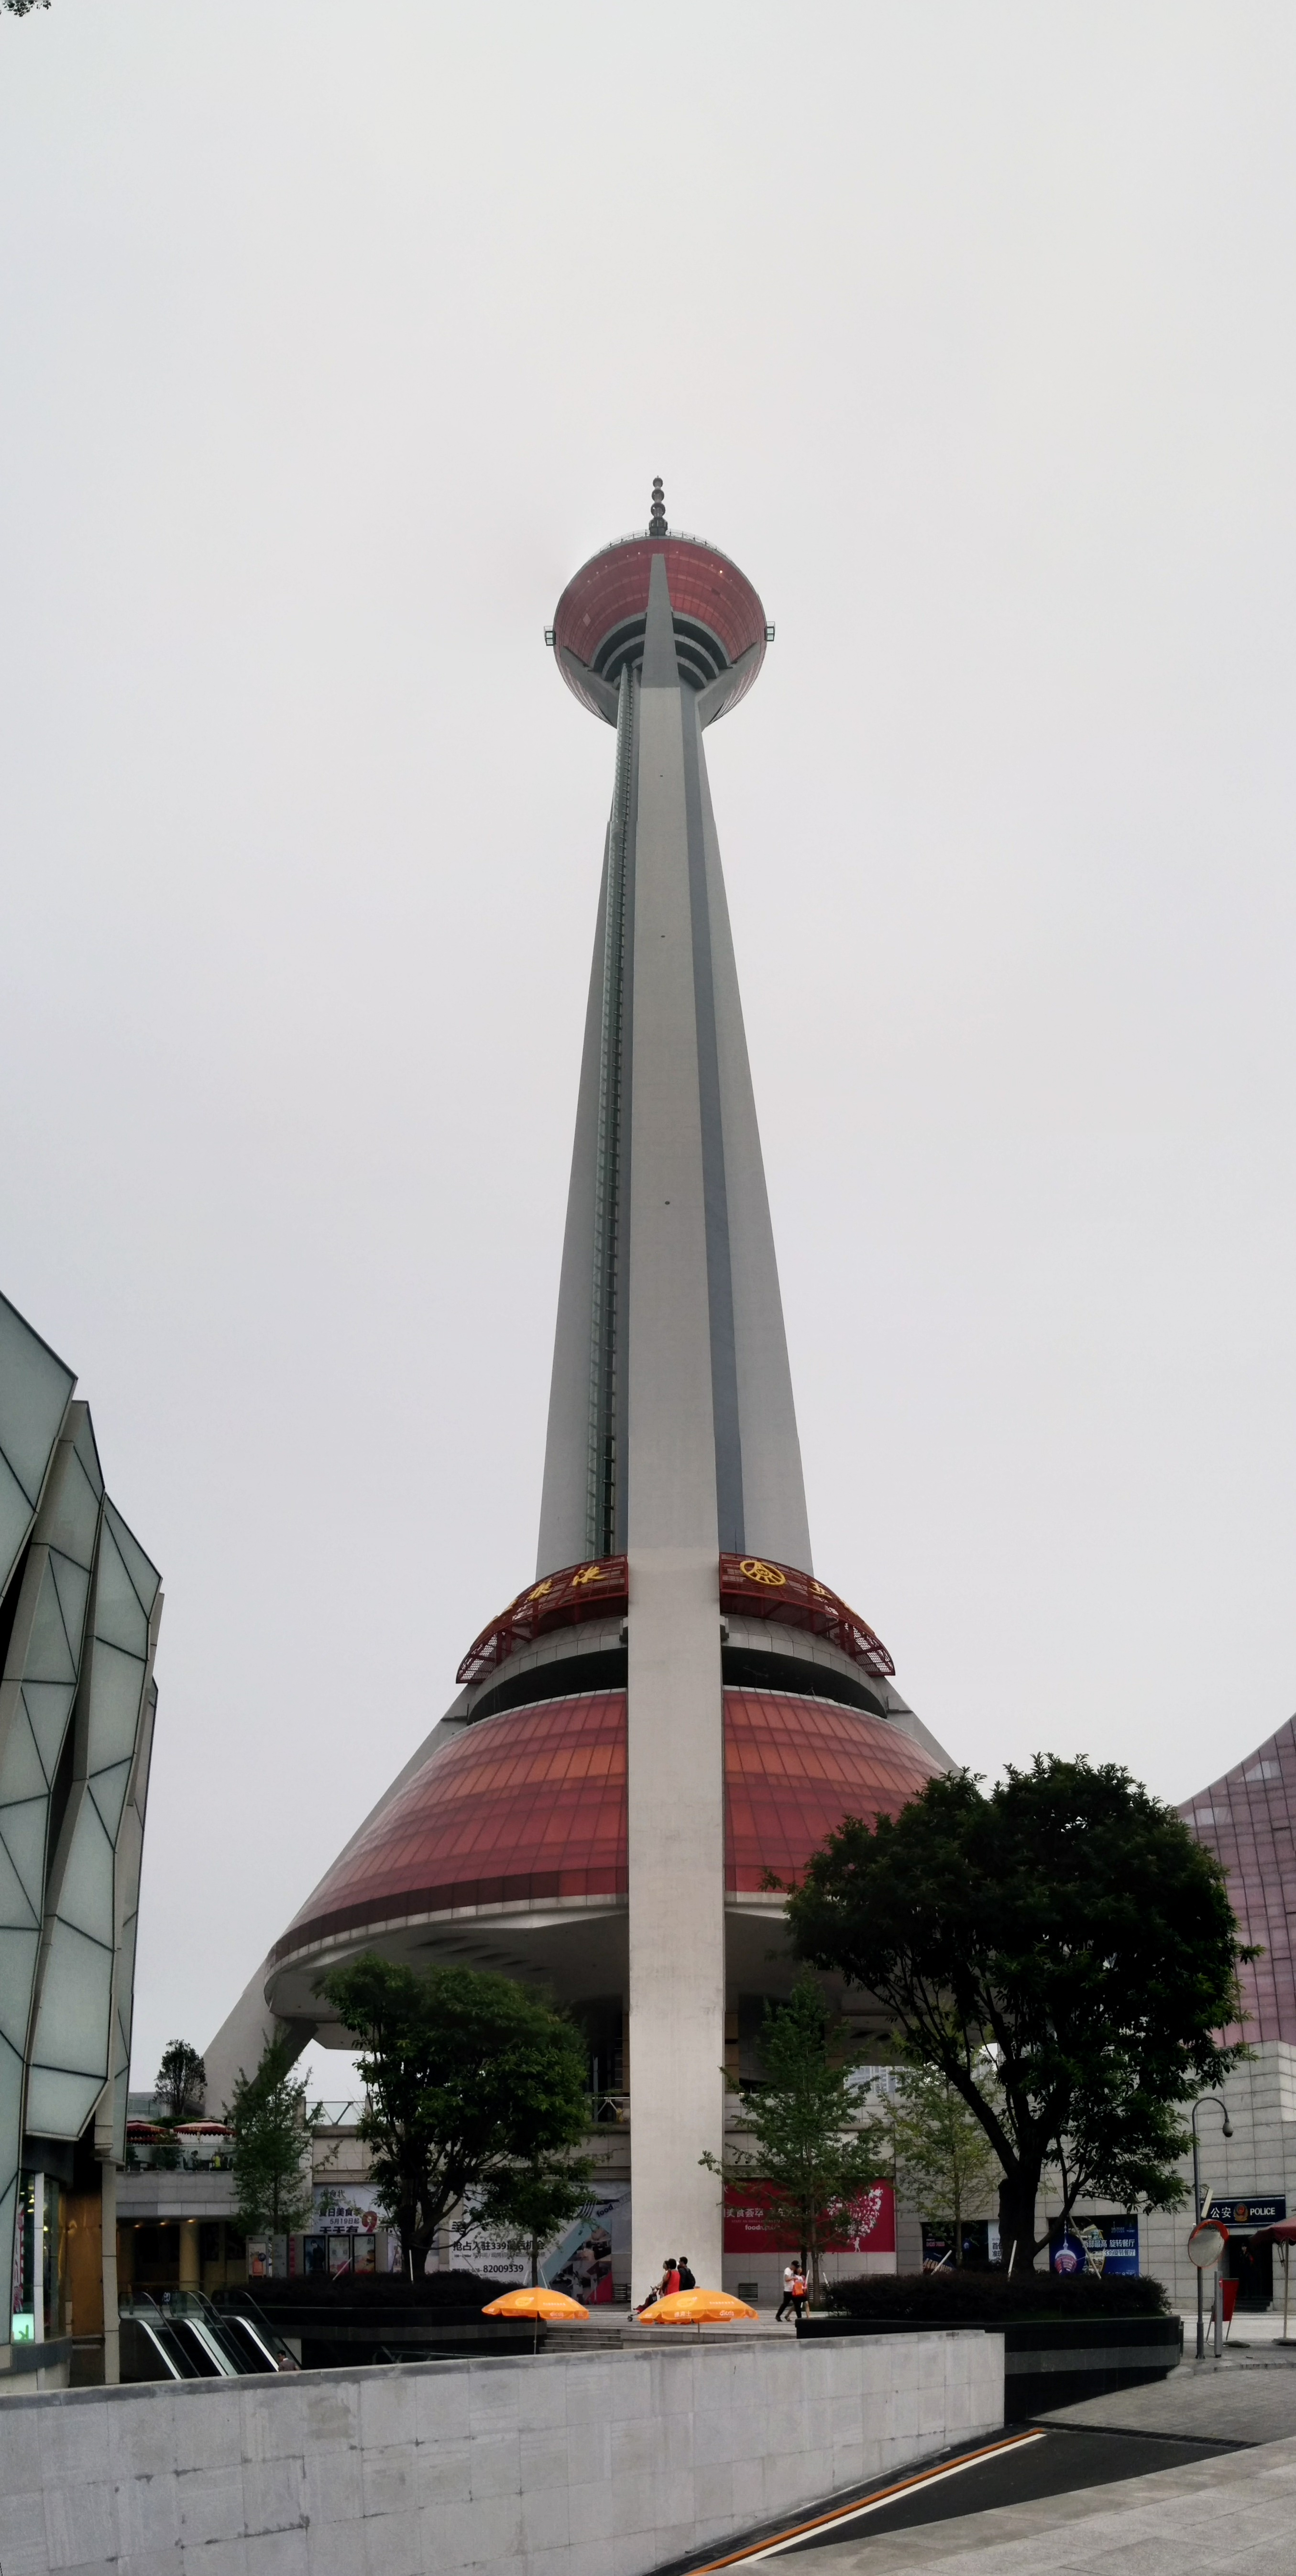 The tower from the plaza below.